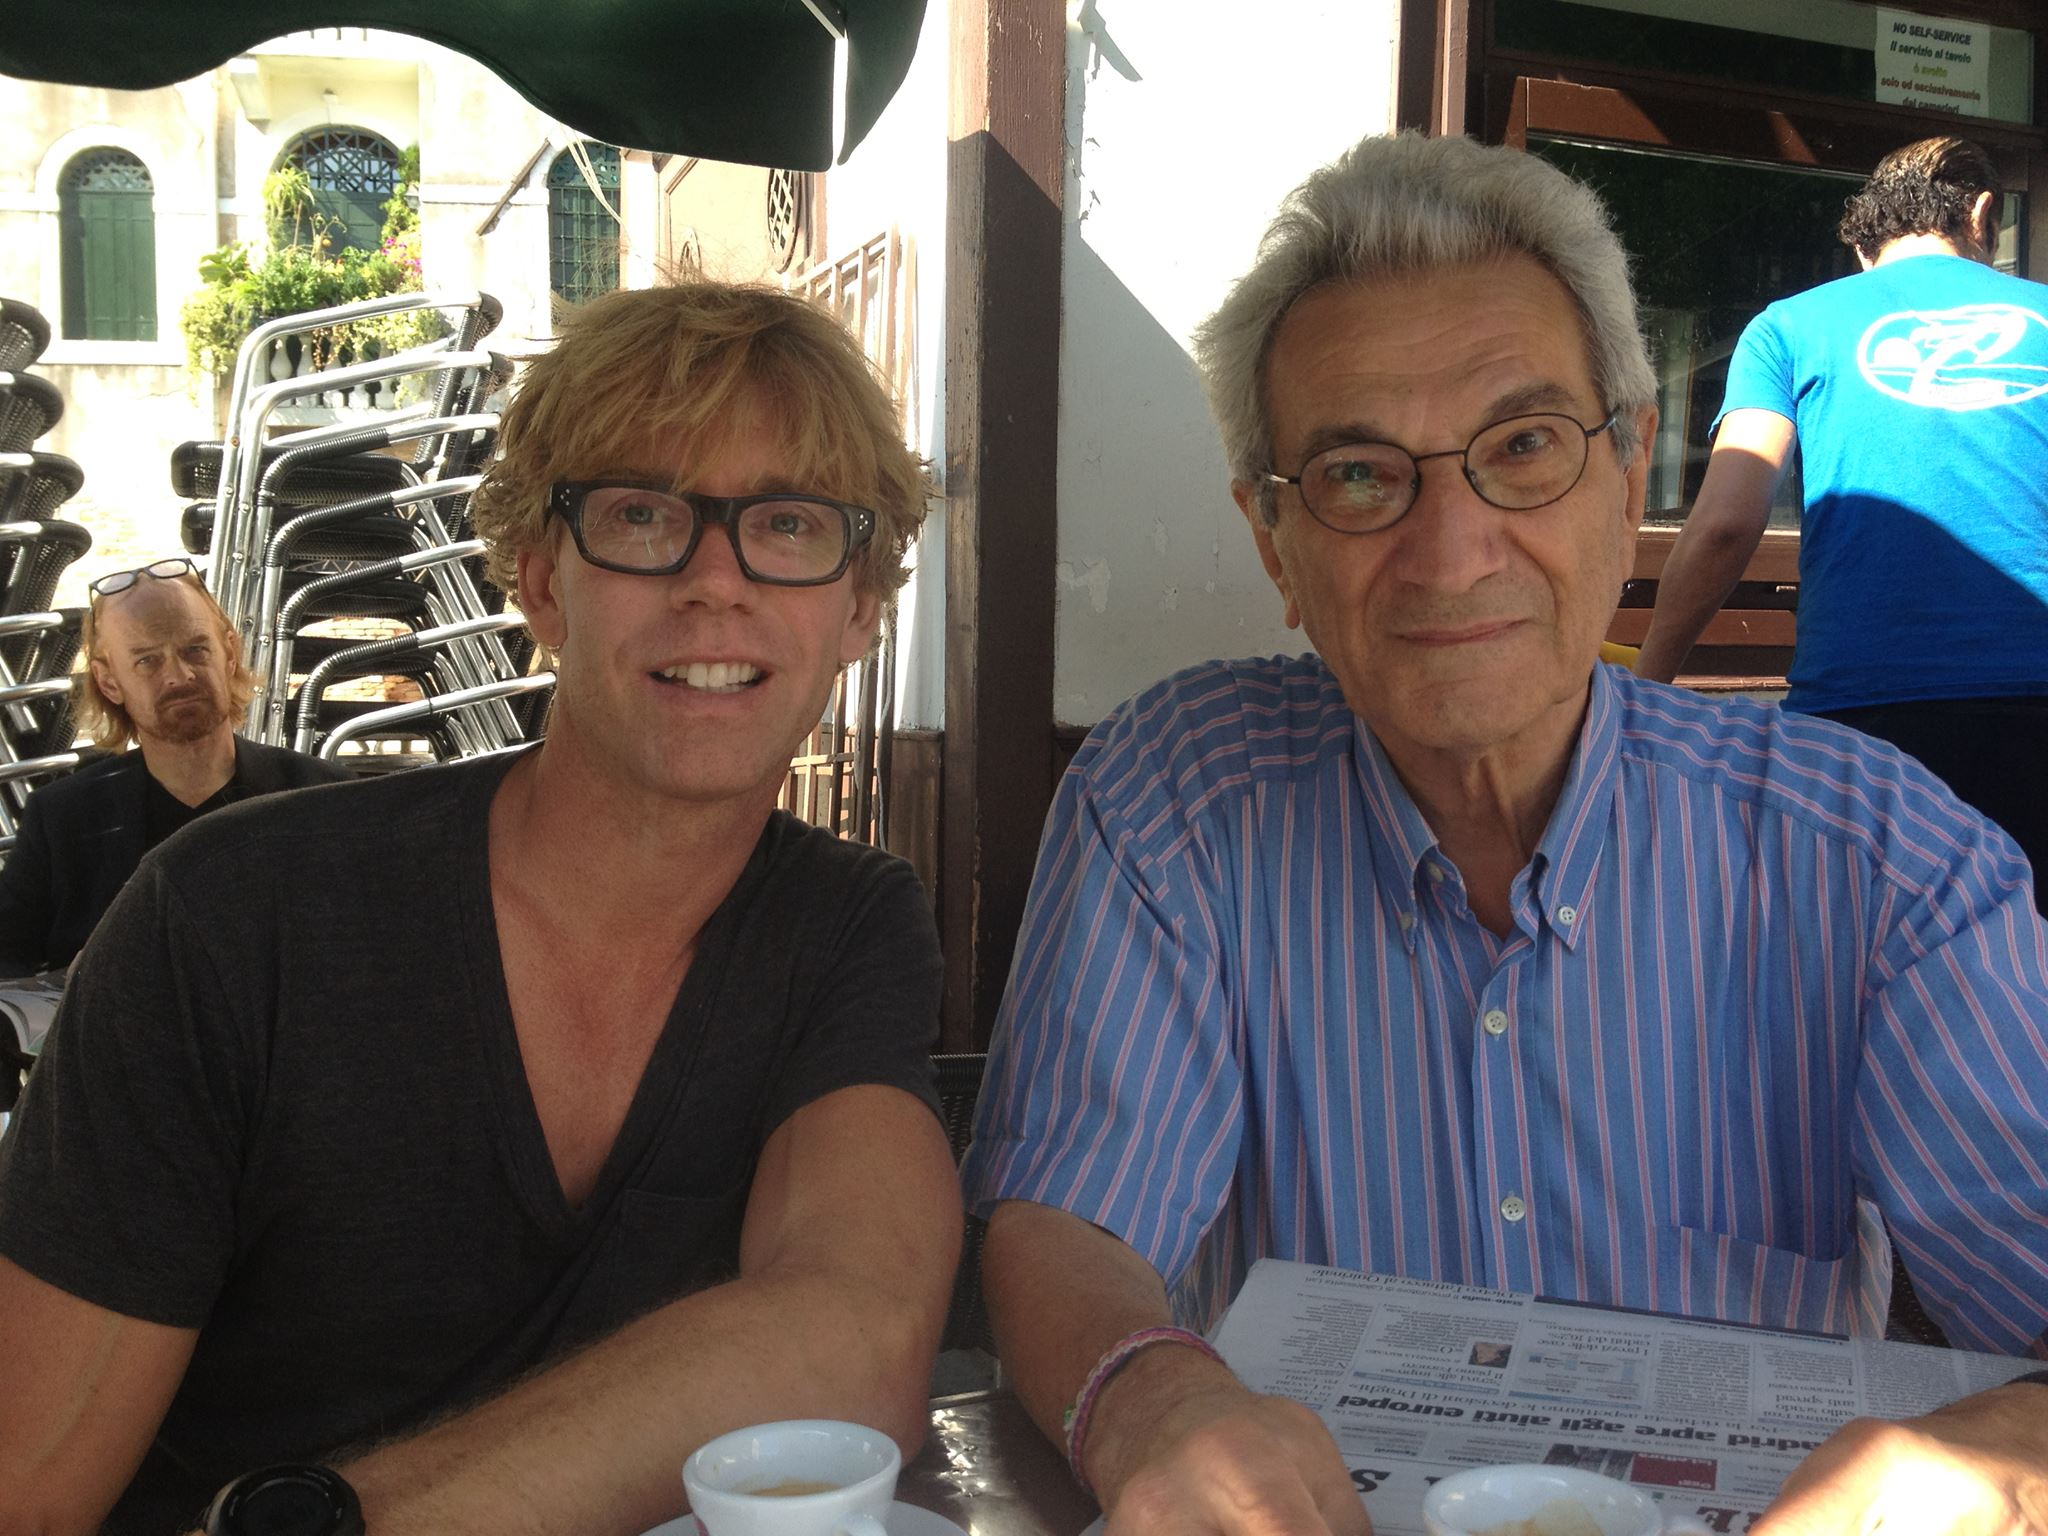 In Venice with Antonio Negri - We are about to shoot a scene